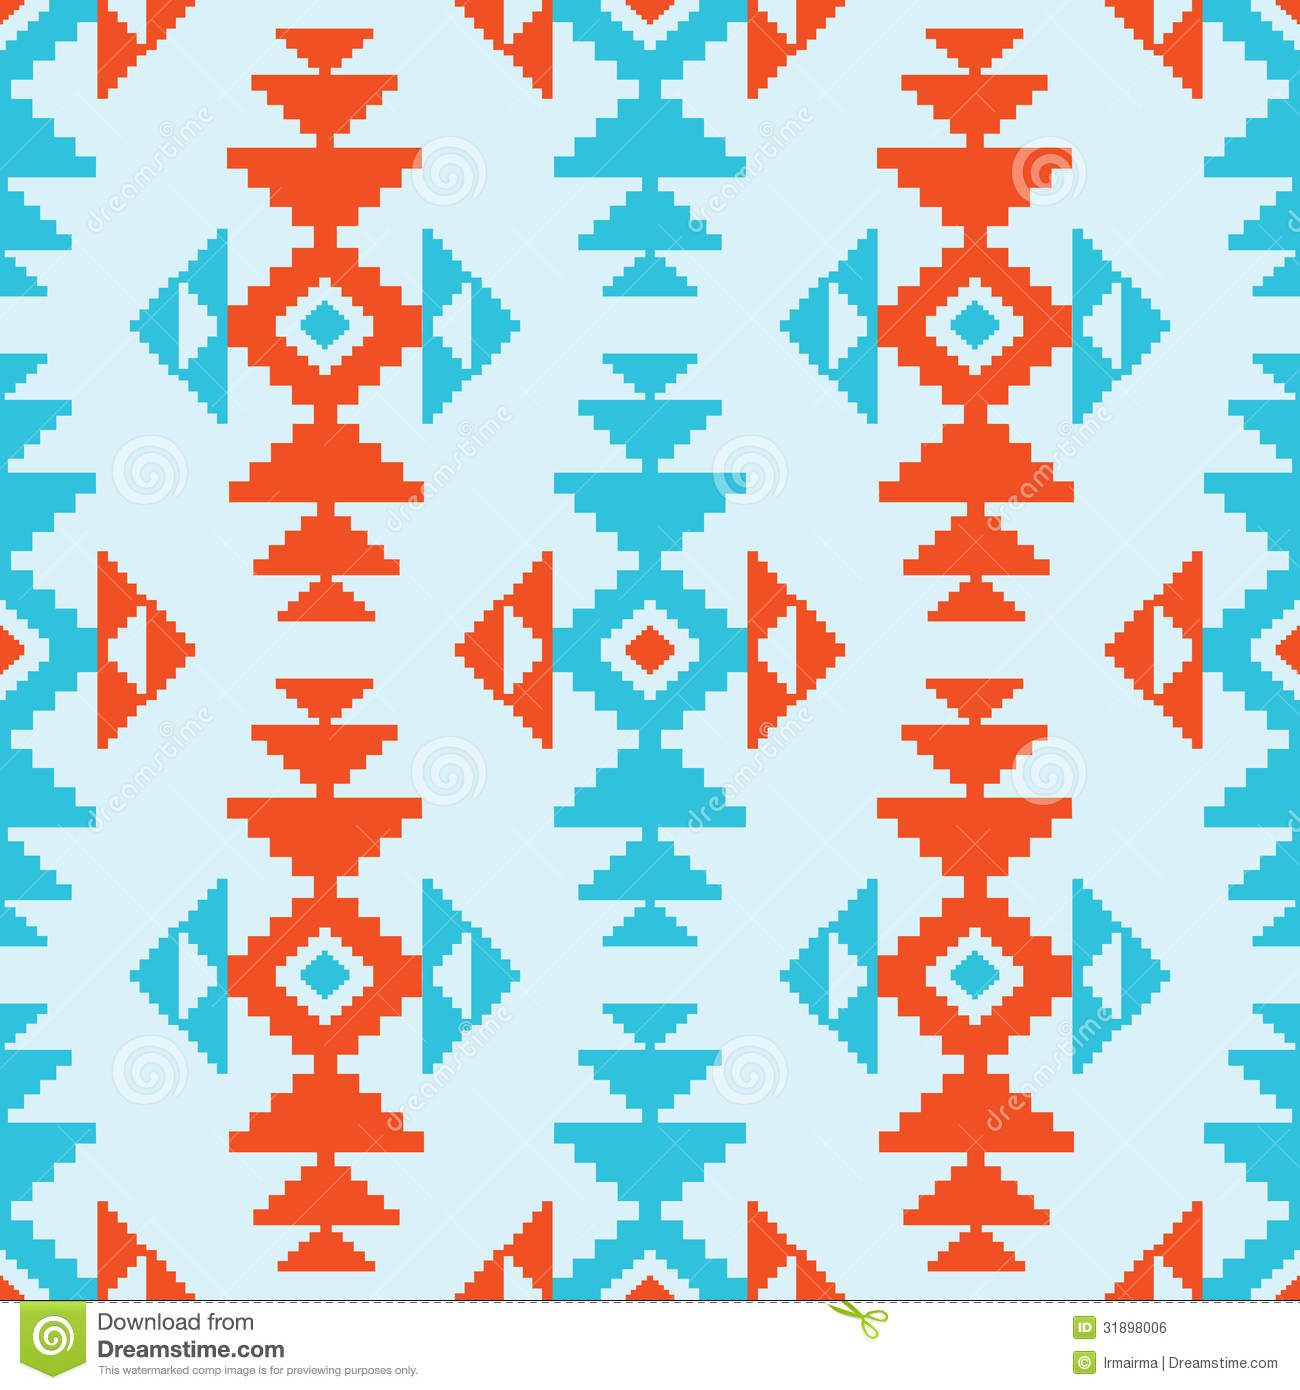 American Indian Patterns Clipart.